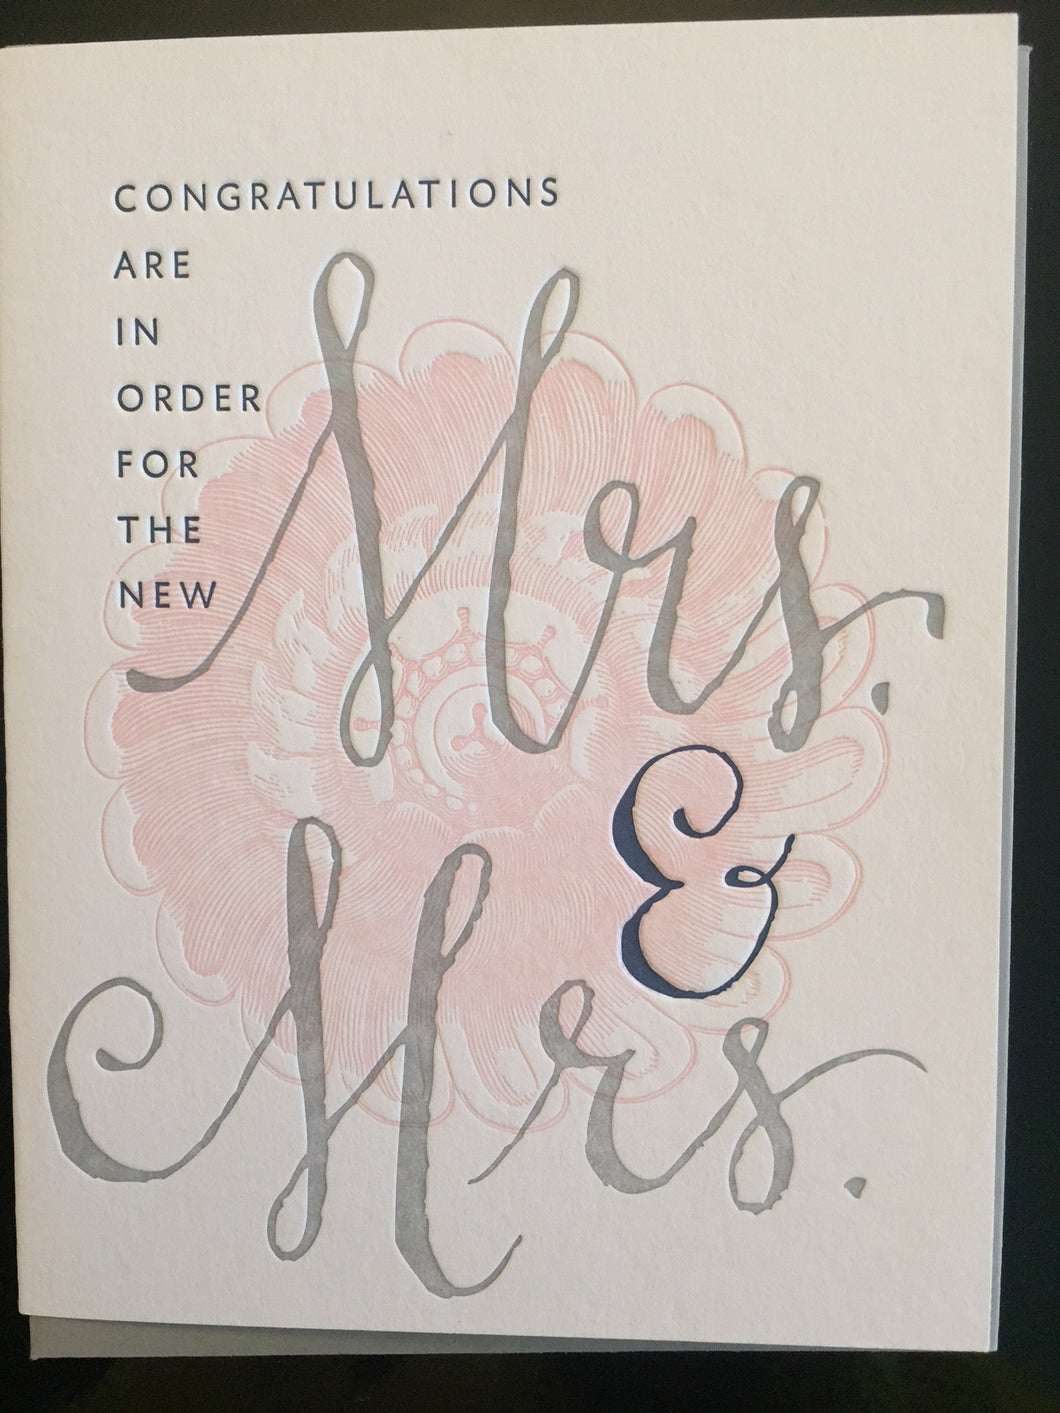 Mrs. + Mrs. Wedding Card